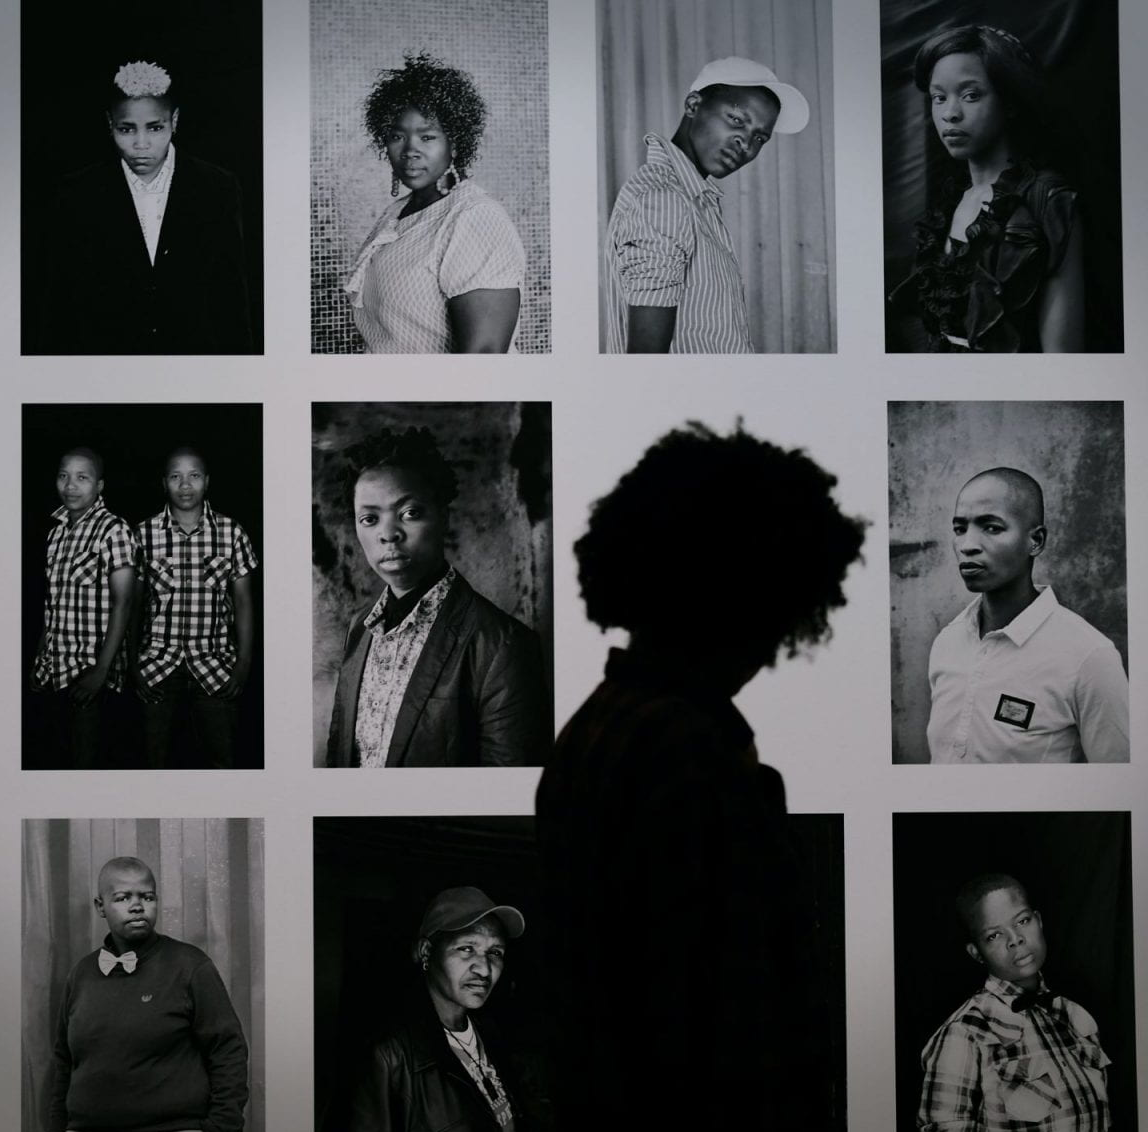 Image is a collage of photographs hung on the wall, showing a diverse group of black people with a person walking past and looking at it. Image credit: Christian Fregnan, Stedelijk Museum Amsterdam